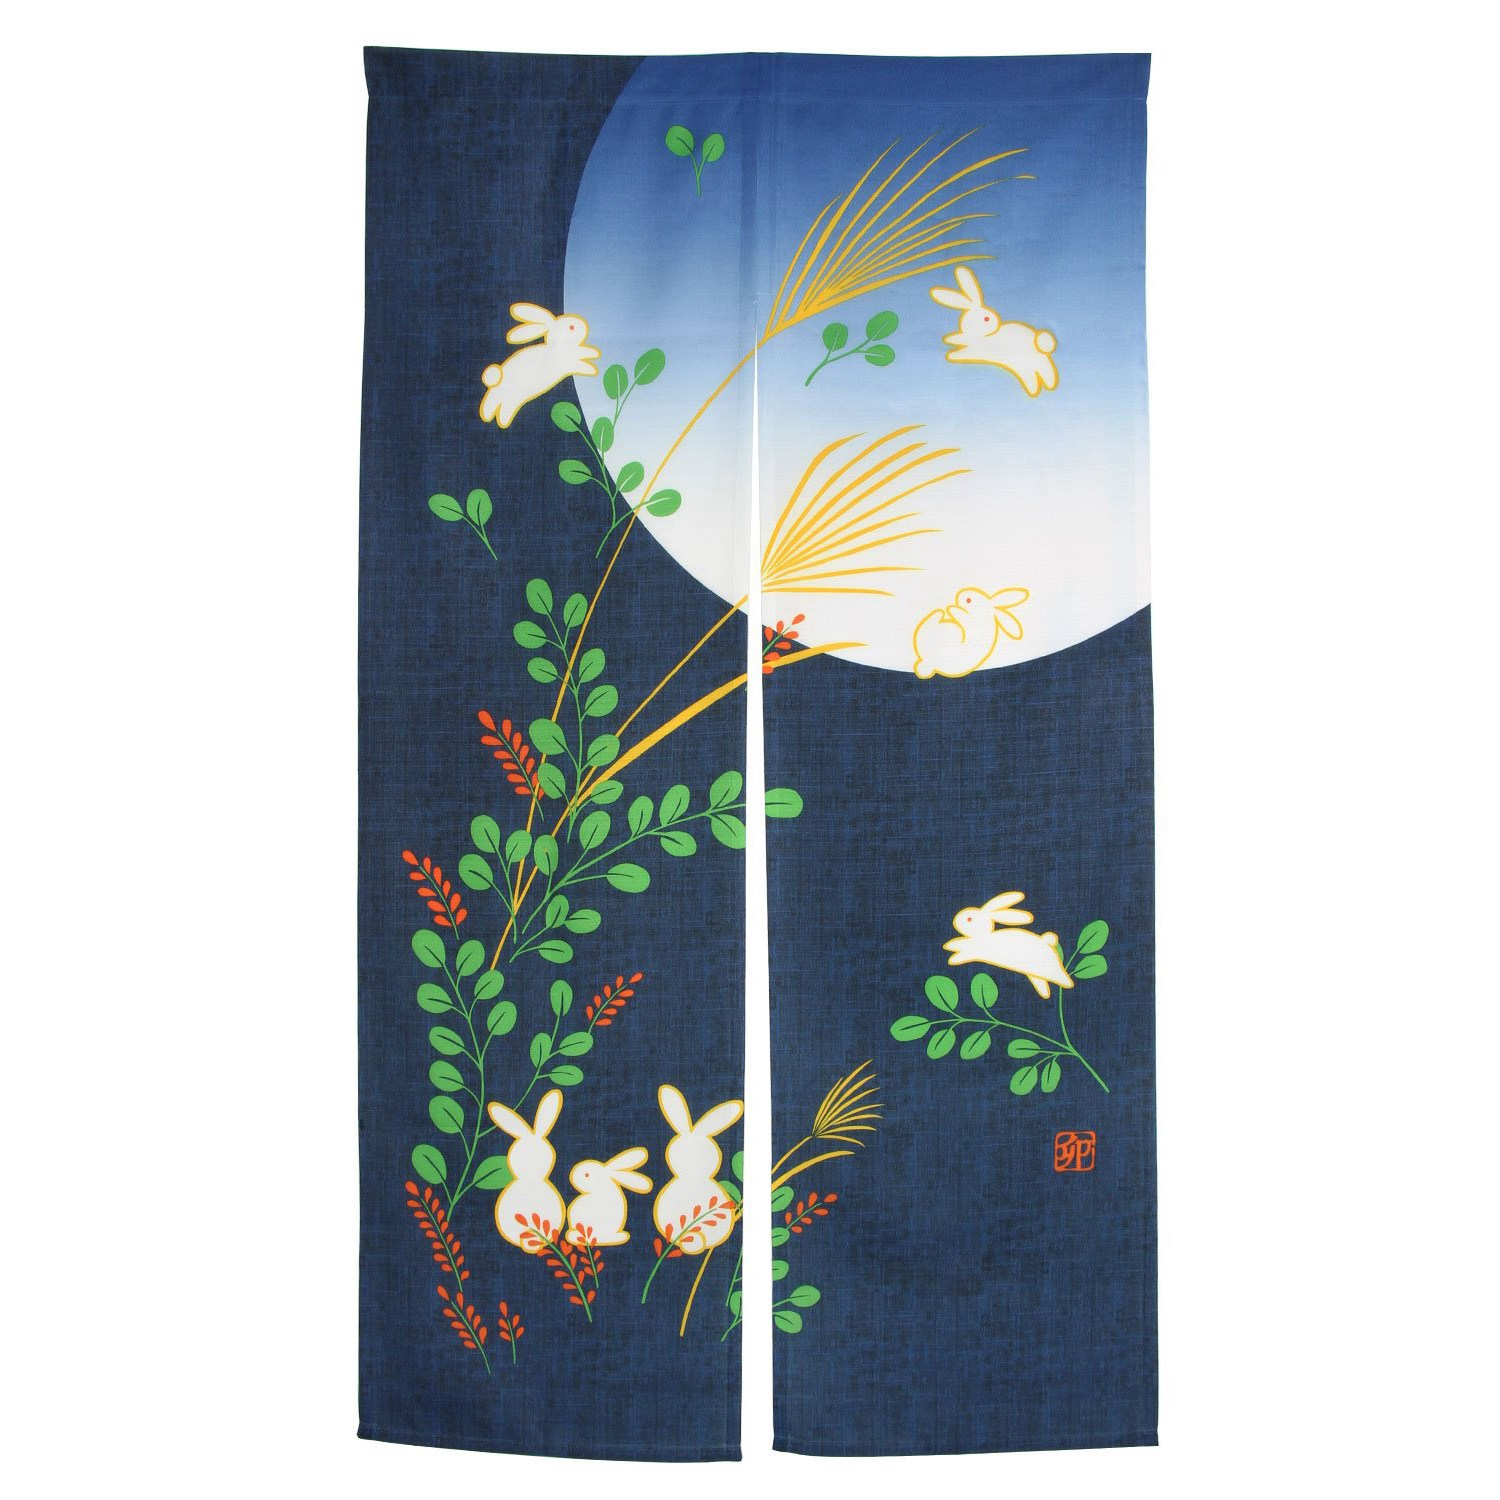 New Japanese Doorway Curtain Noren Rabbit Under Moon For Home Decoration 85X150Cm